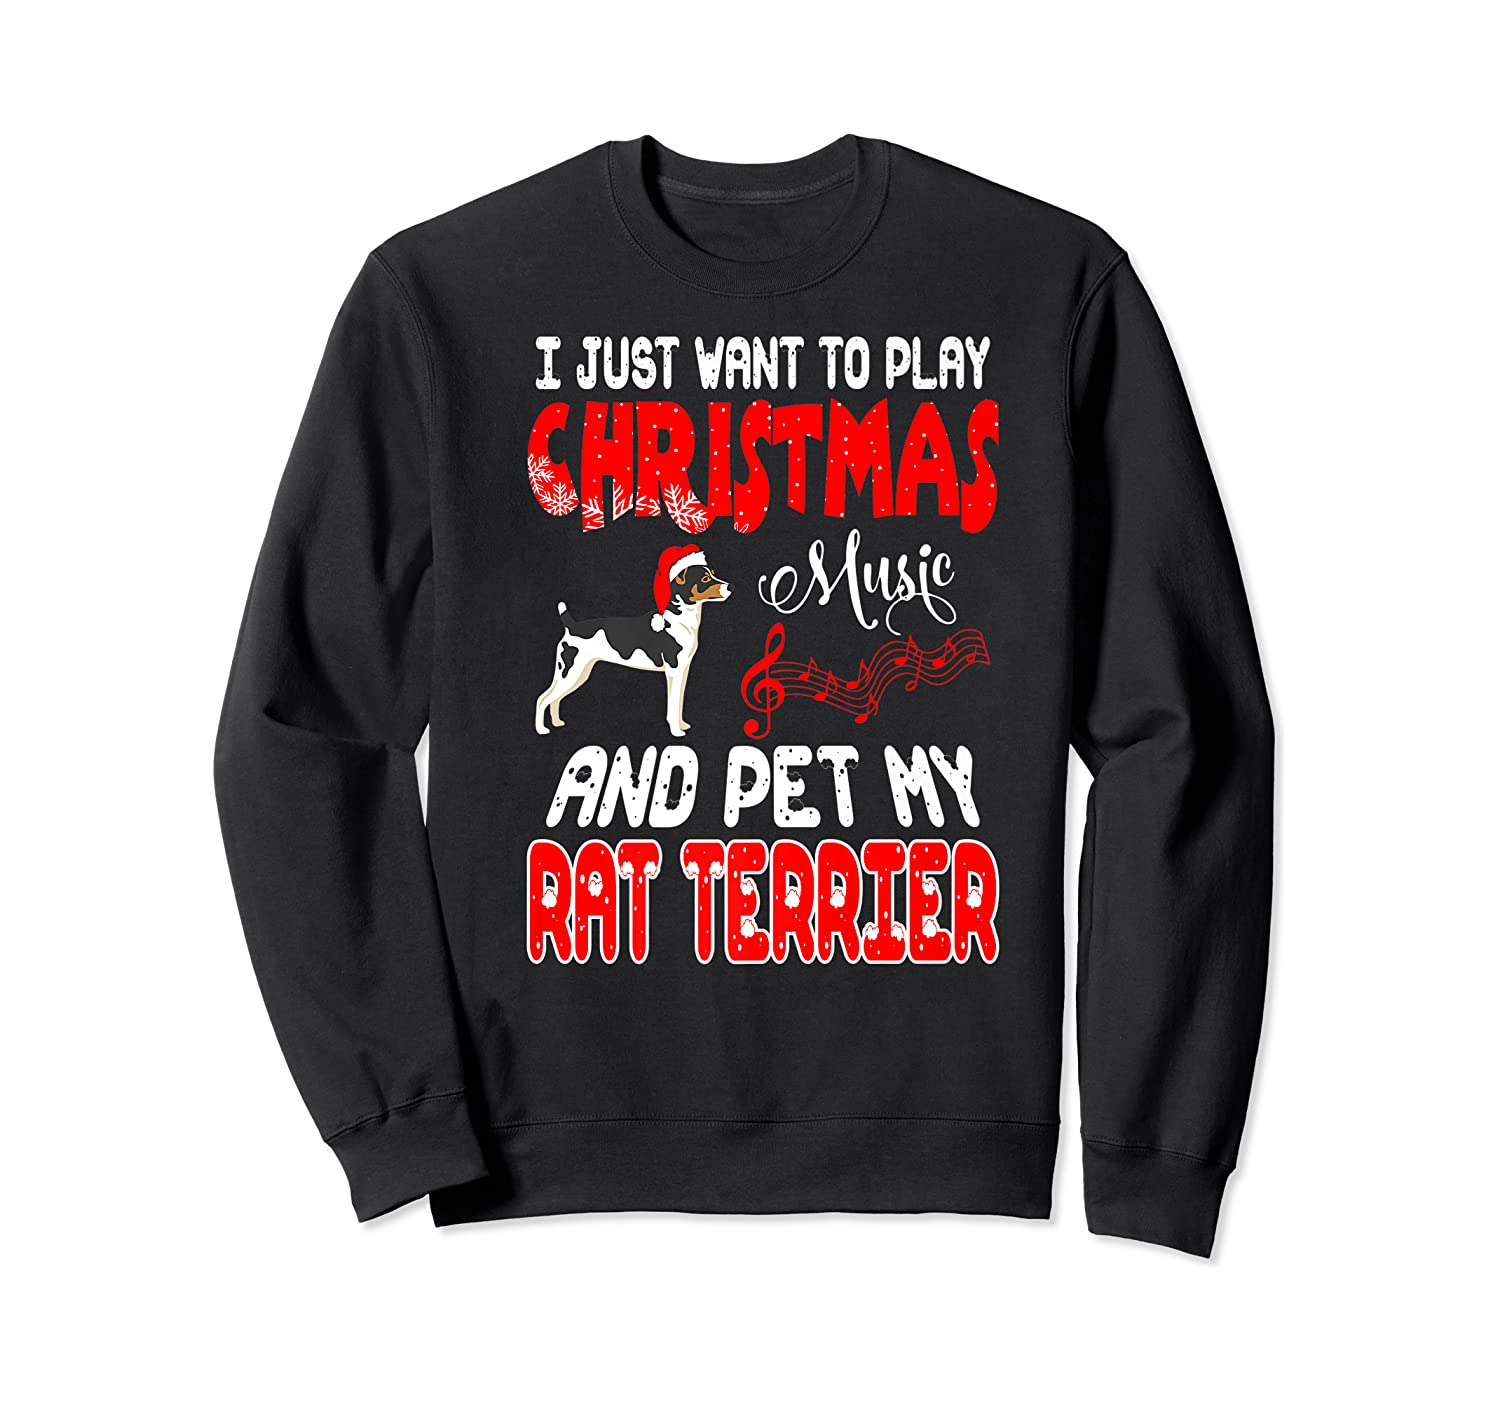 Just Want To Play Christmas Music And Pet Rat Terrier Premium T-shirt Crewneck Sweater